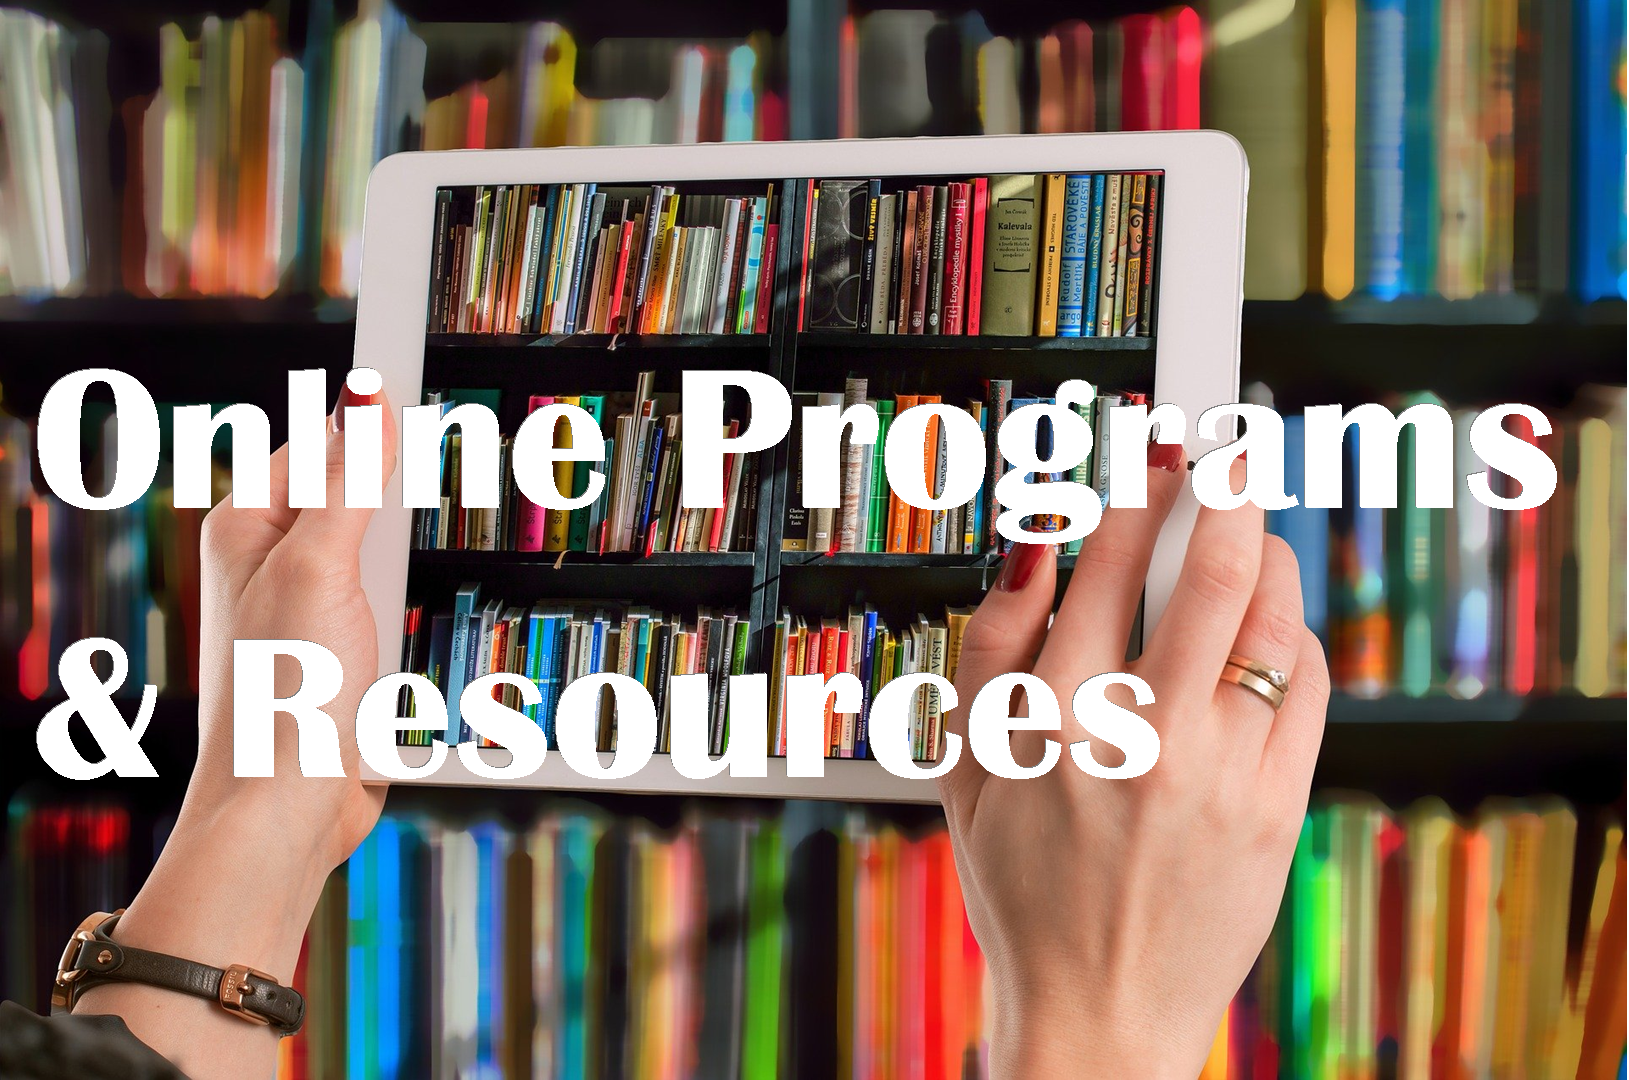 Online Programs and Resources